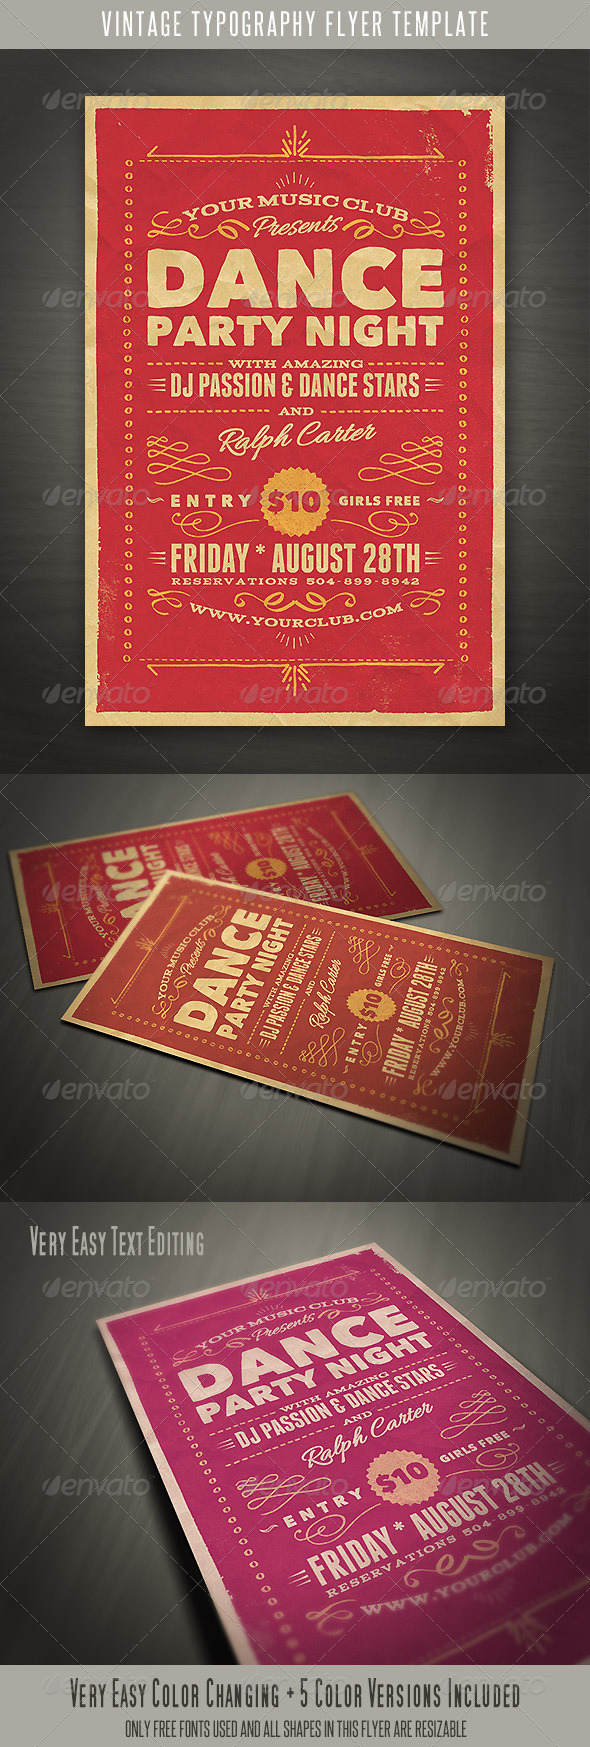 Vintage Style Typography Flyer  - Events Flyers